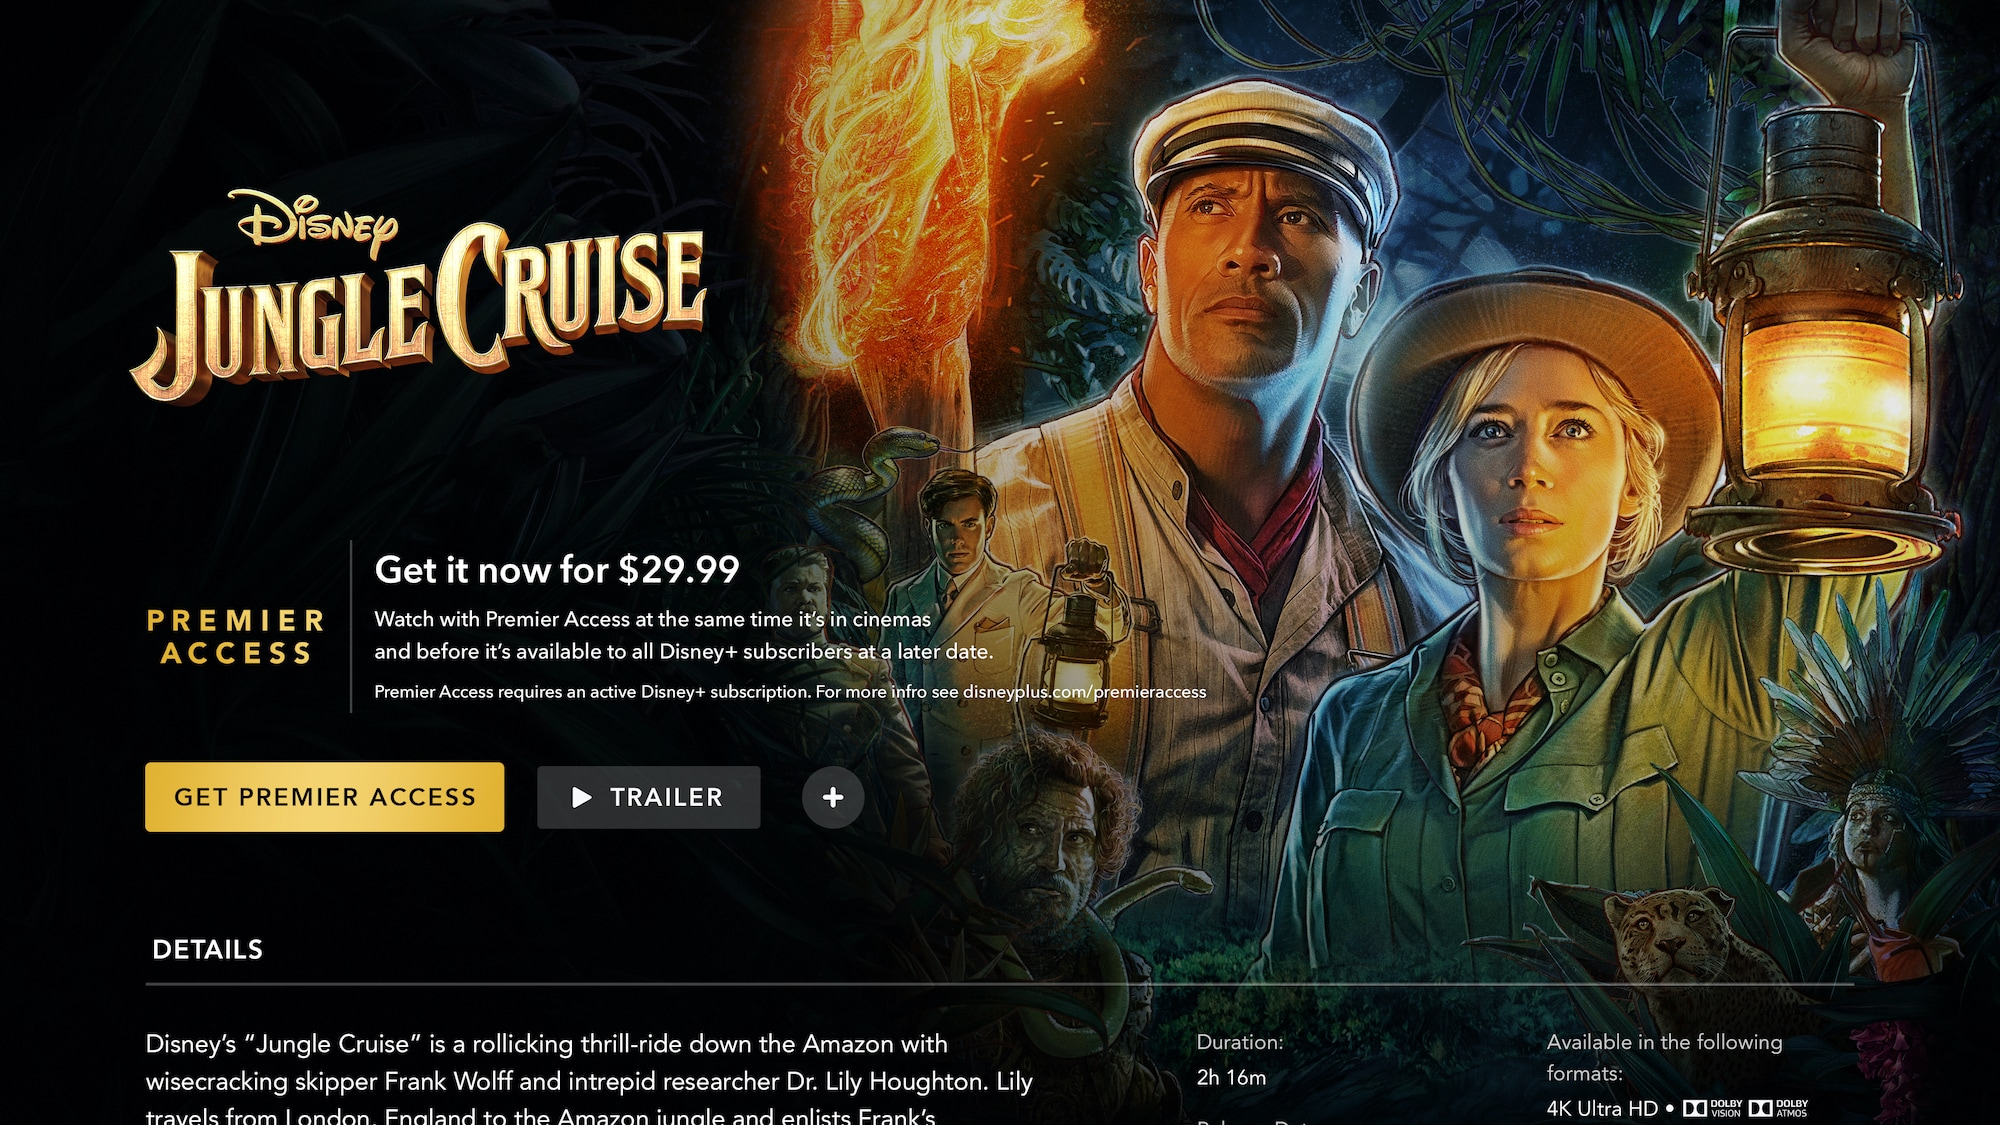 Disney+ Jungle Cruise Premiere Access on Connected TV